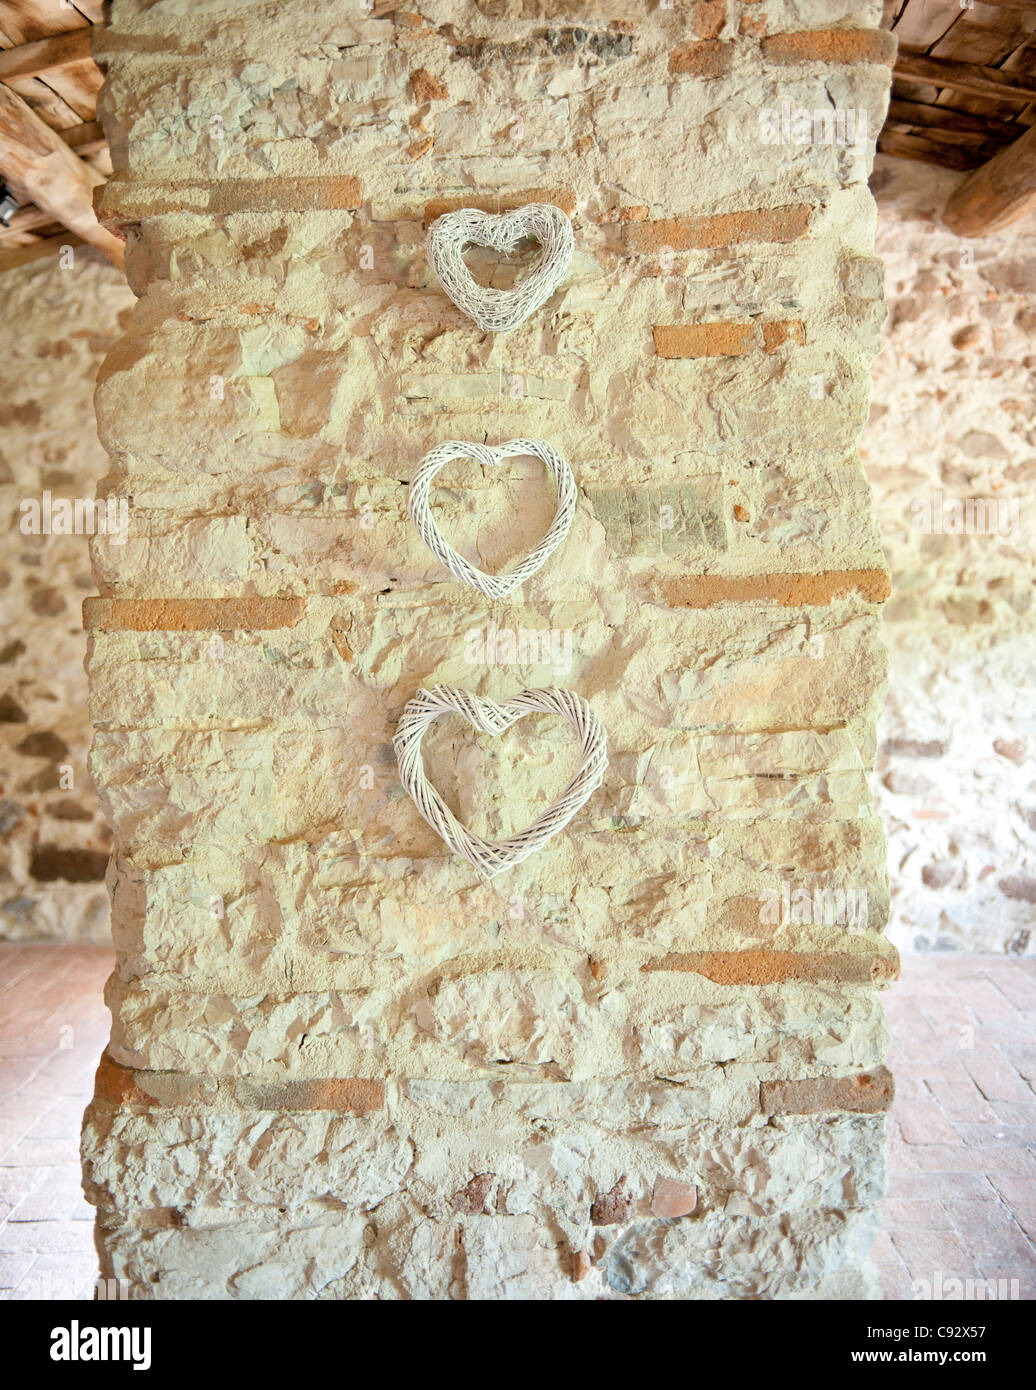 The heart is the internationally recognised symbol of love and is traditionally used the worl over to decorate wedding - Stock Image